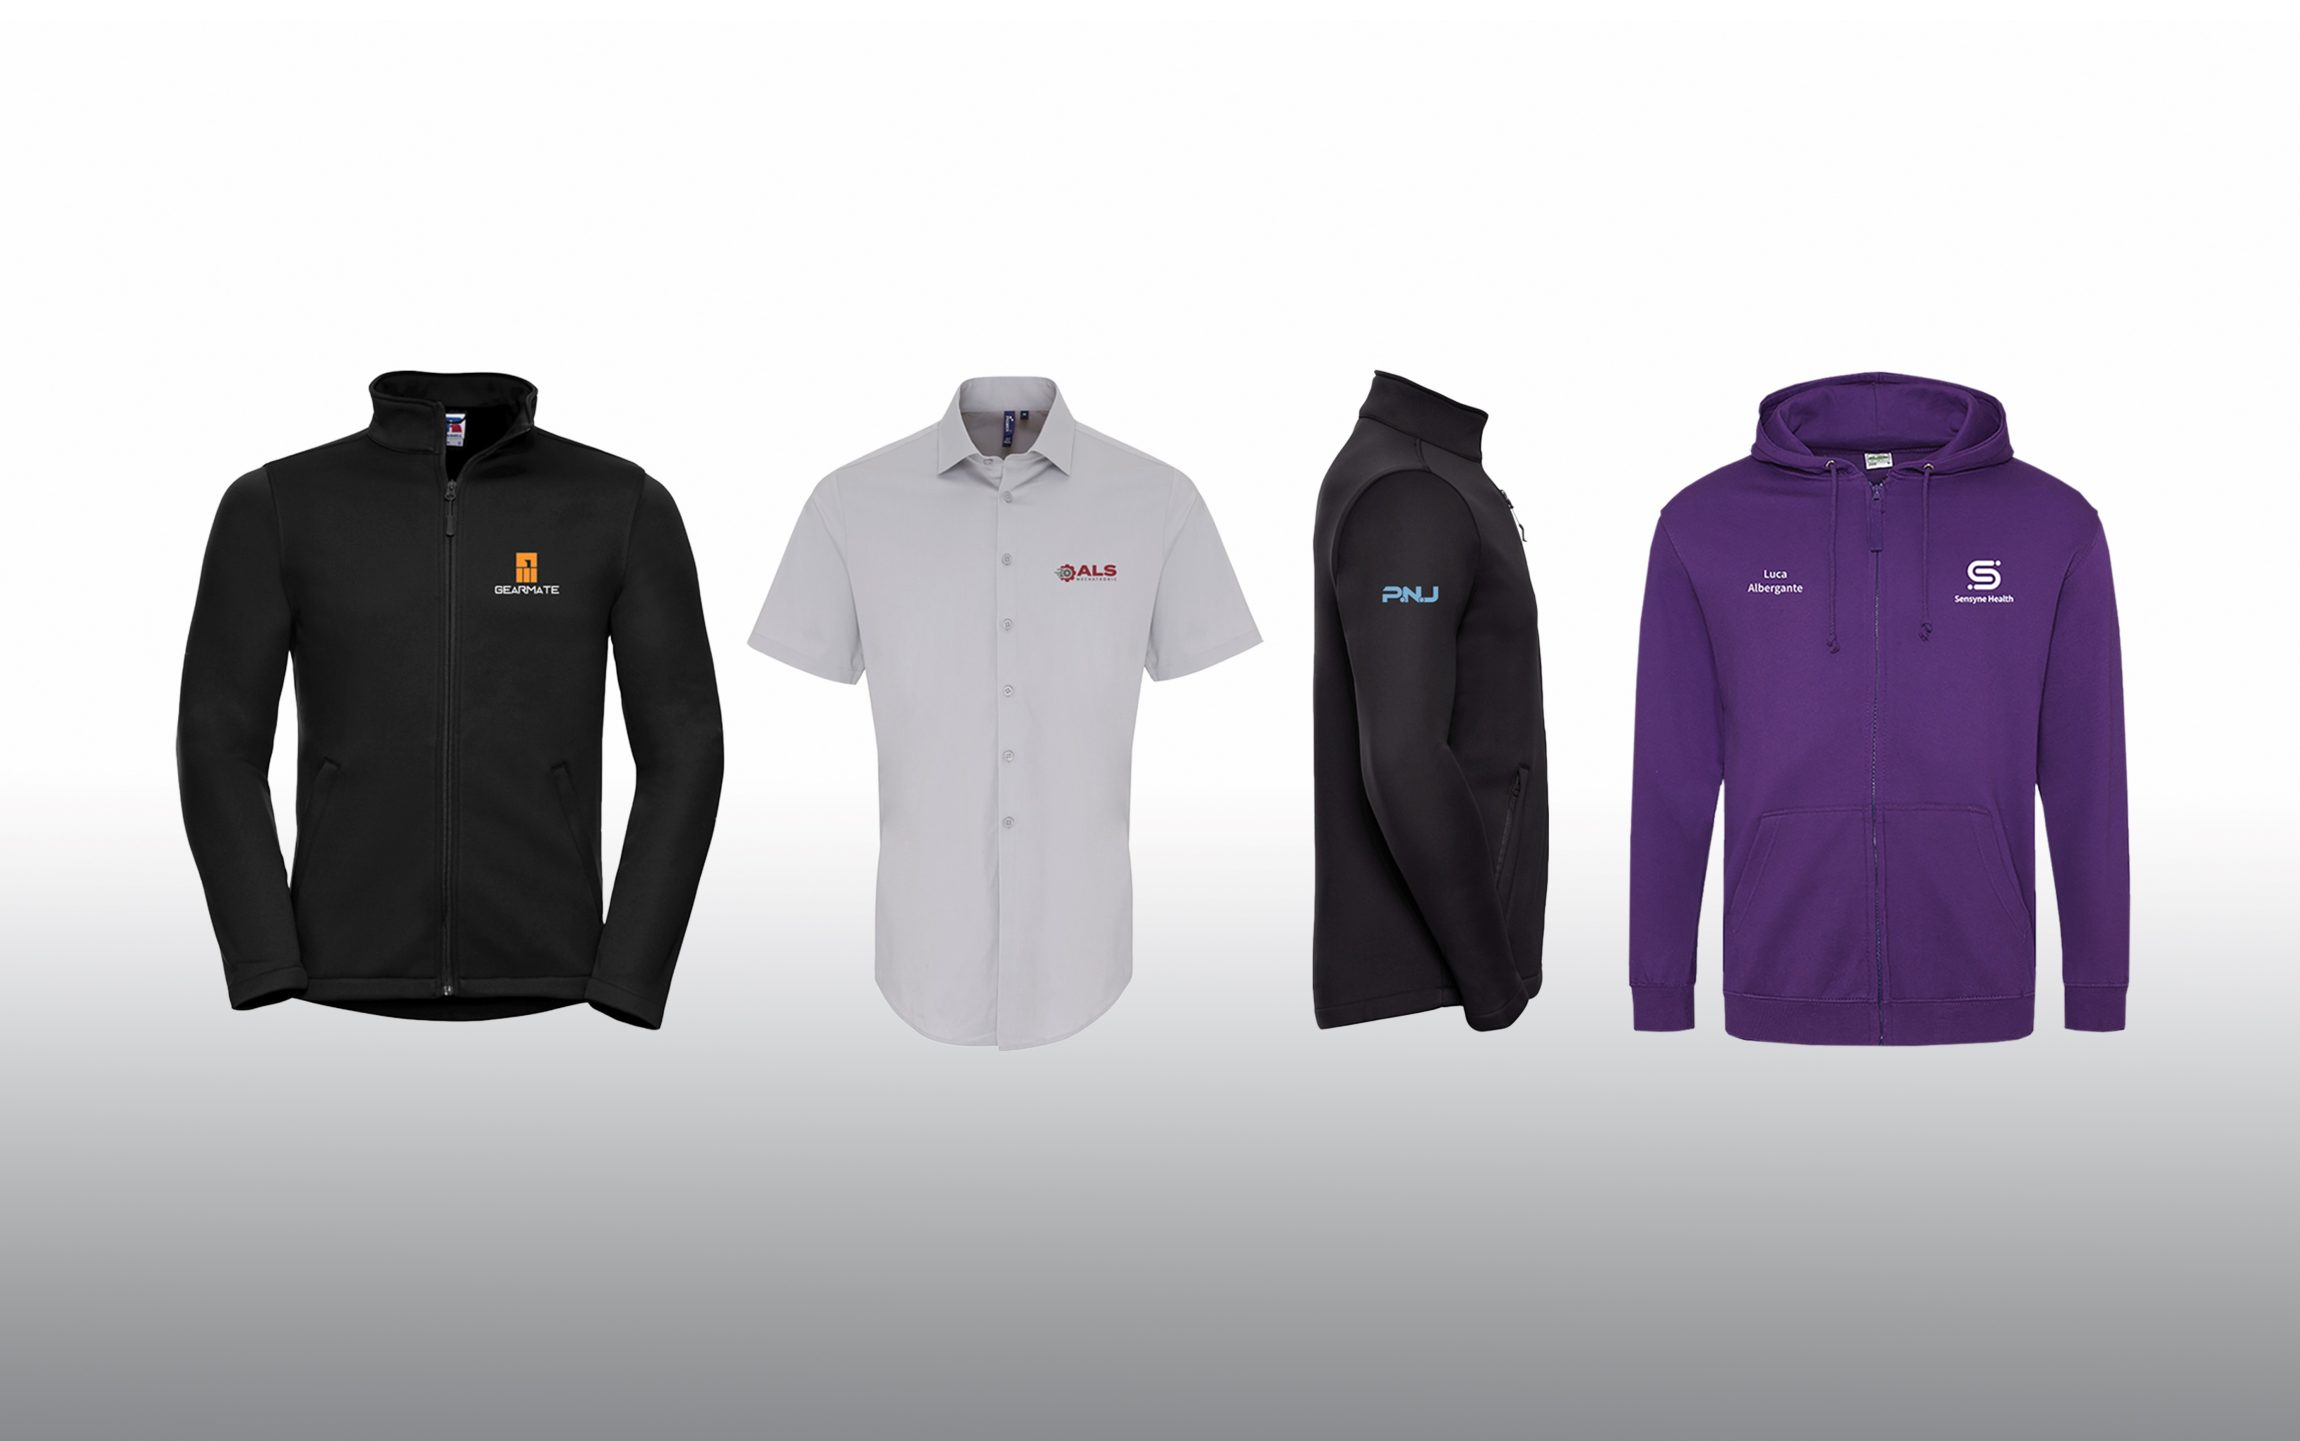 branded uniform shirts Marketing and Merchandise sweatshirts